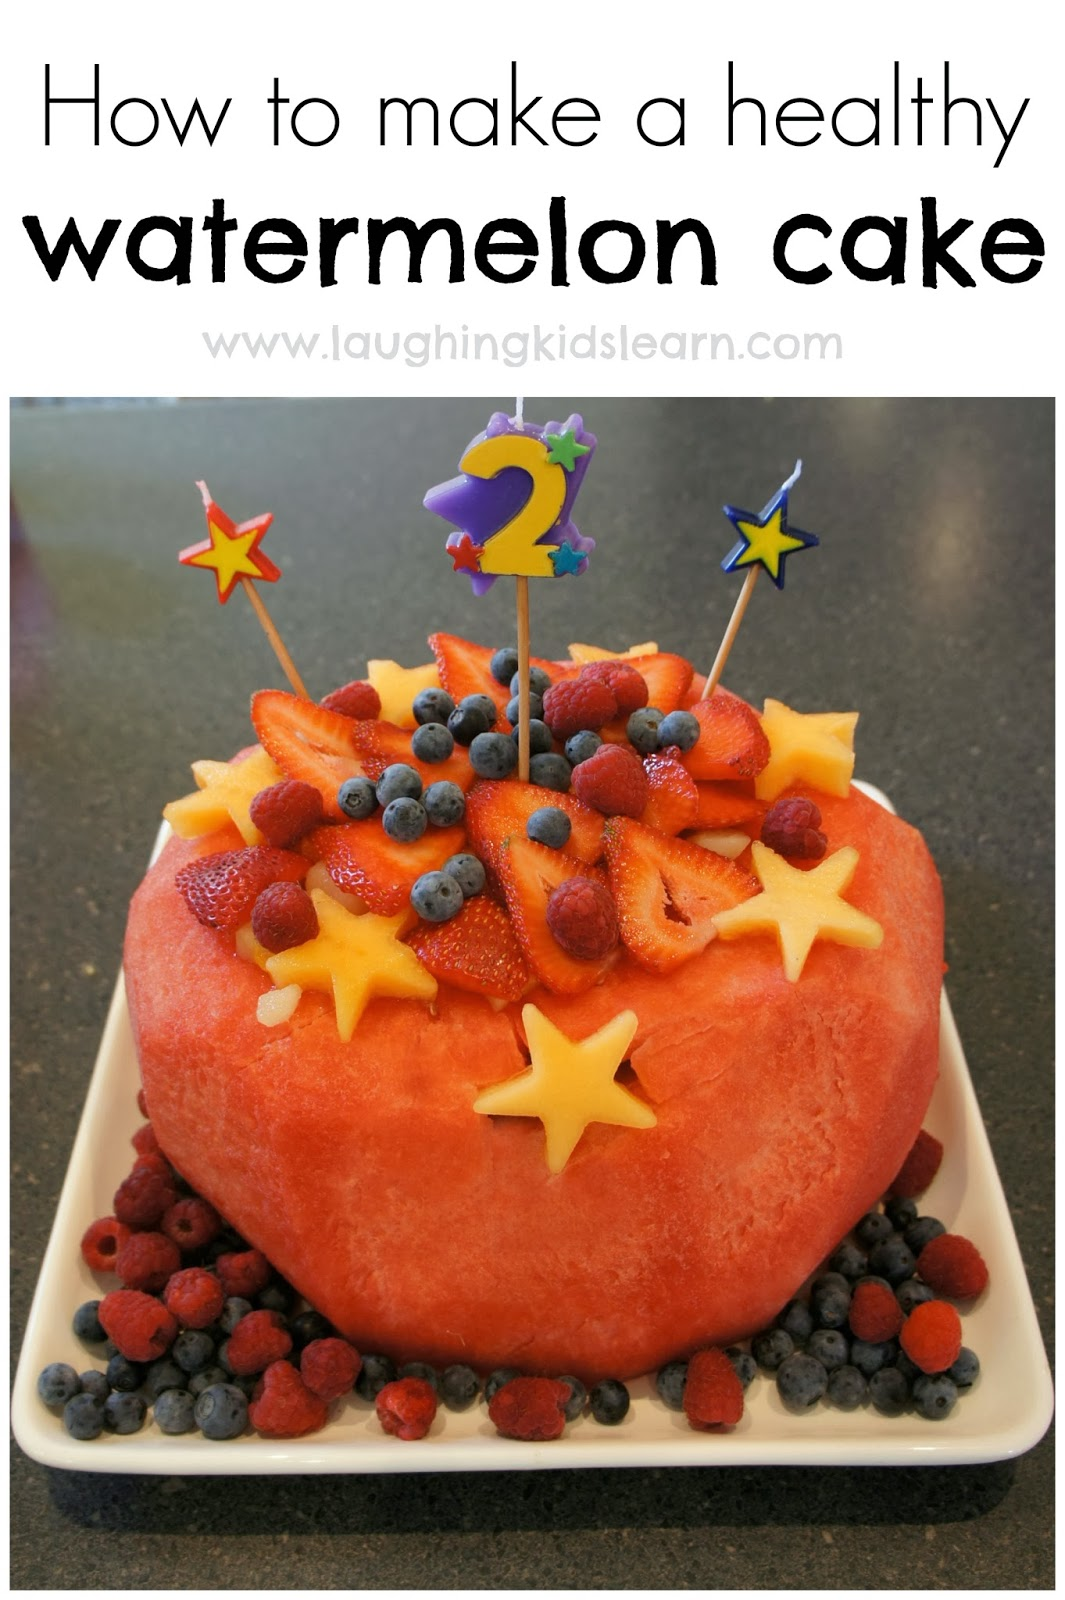 How To Make A Healthy Watermelon Cake Laughing Kids Learn